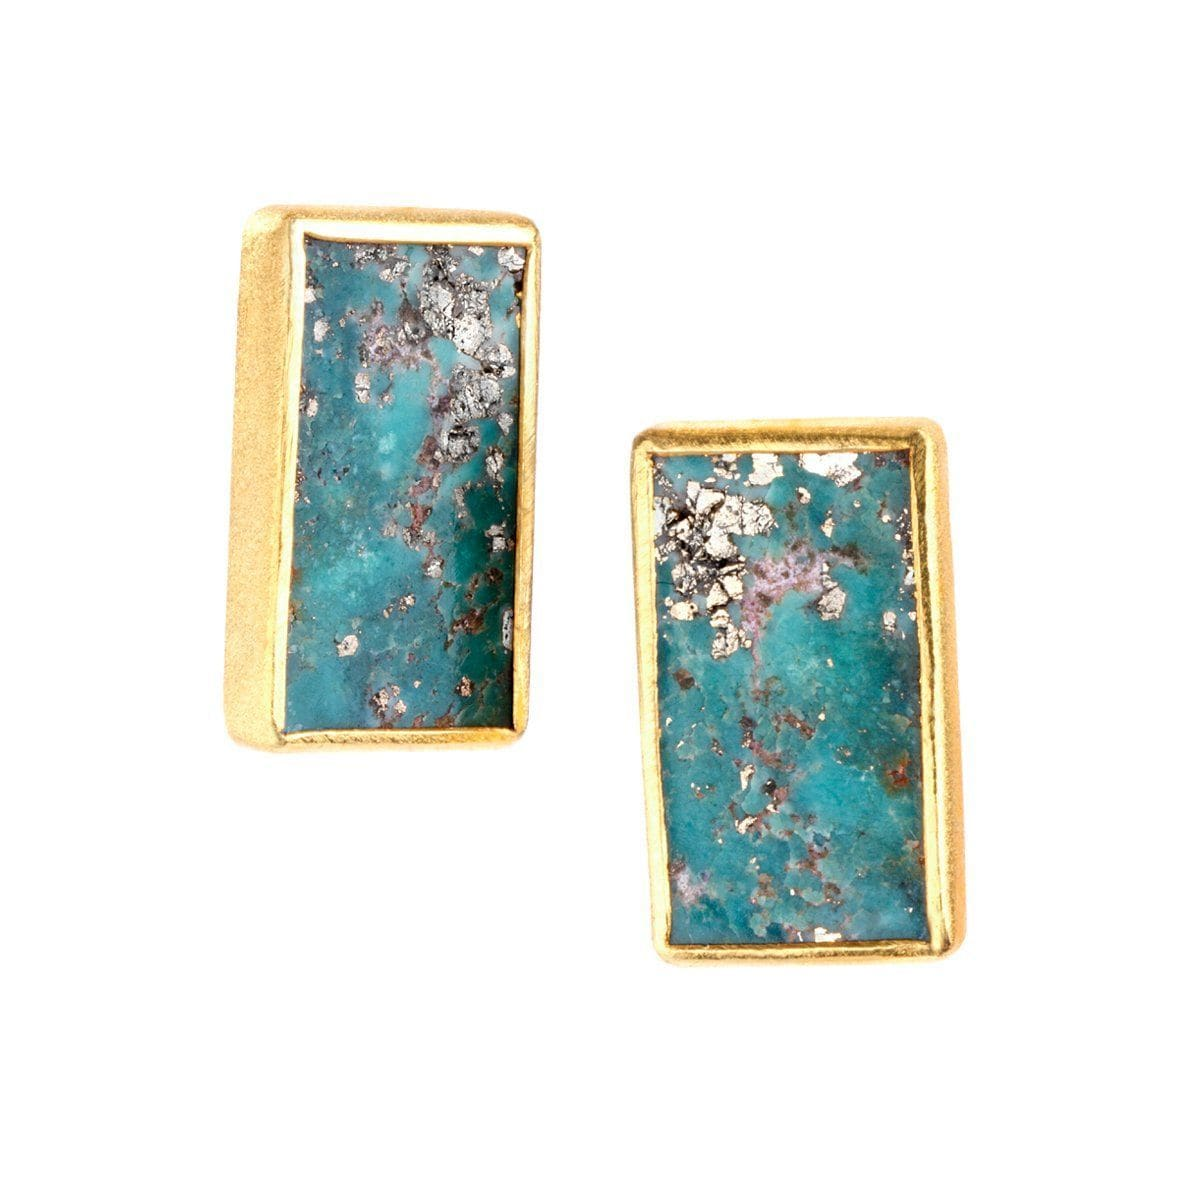 Nirvana 22k Gold Plated Earrings - G7012E-Nina Nguyen-Renee Taylor Gallery